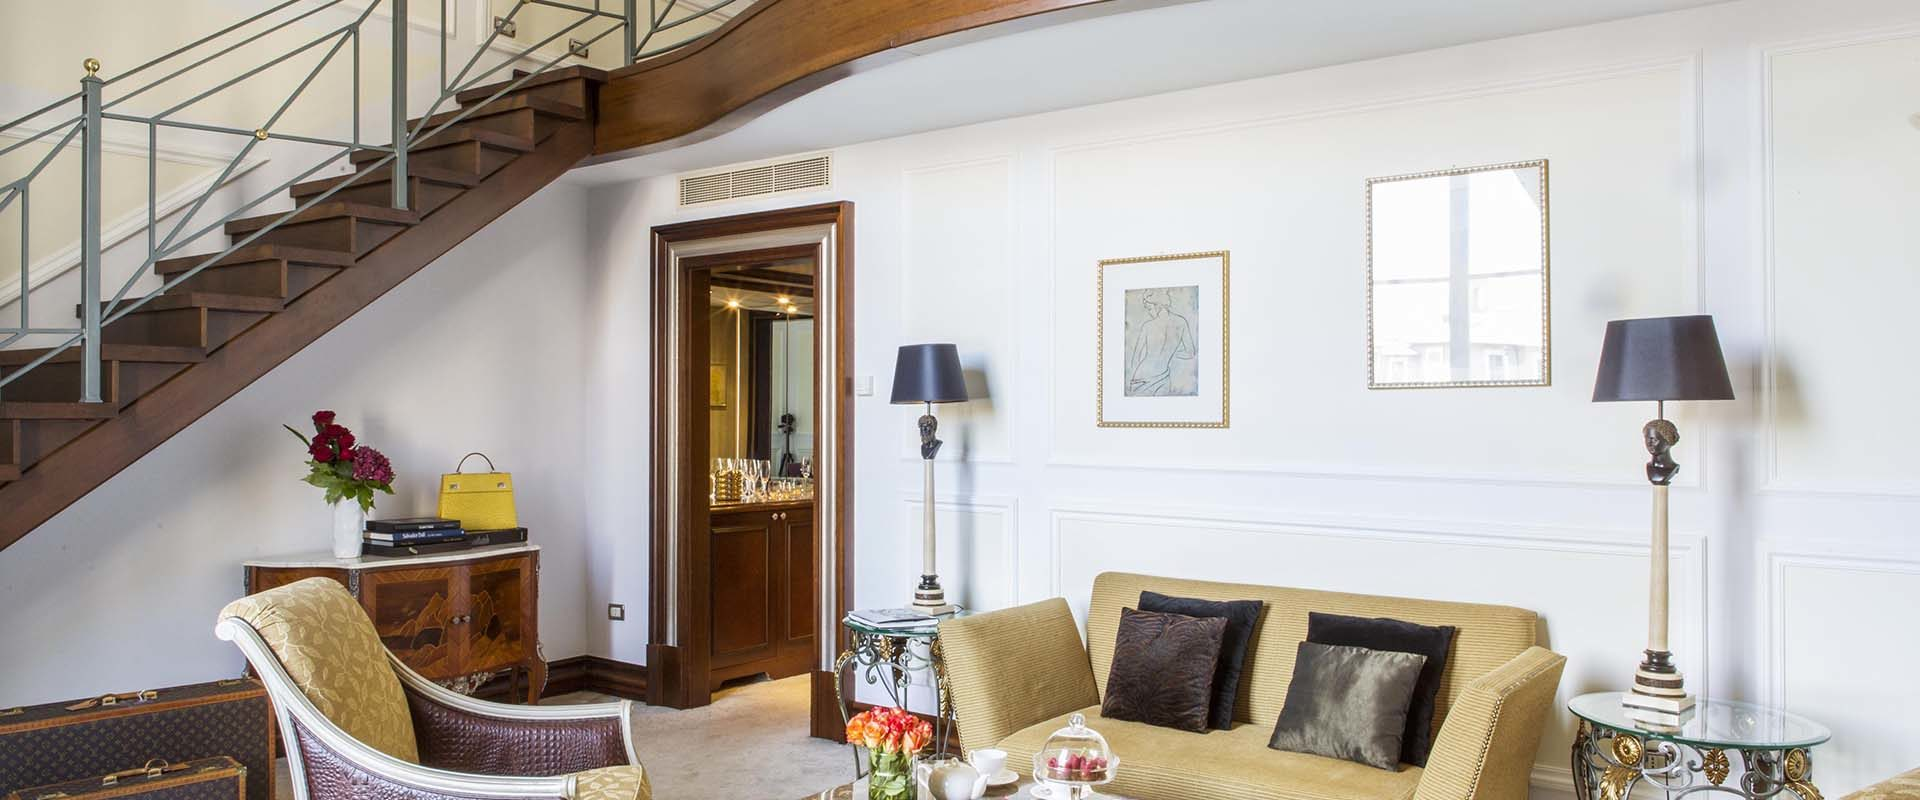 The living room of the Duplex Junior Suite at the Palazzo Naiadi Hotel in Rome